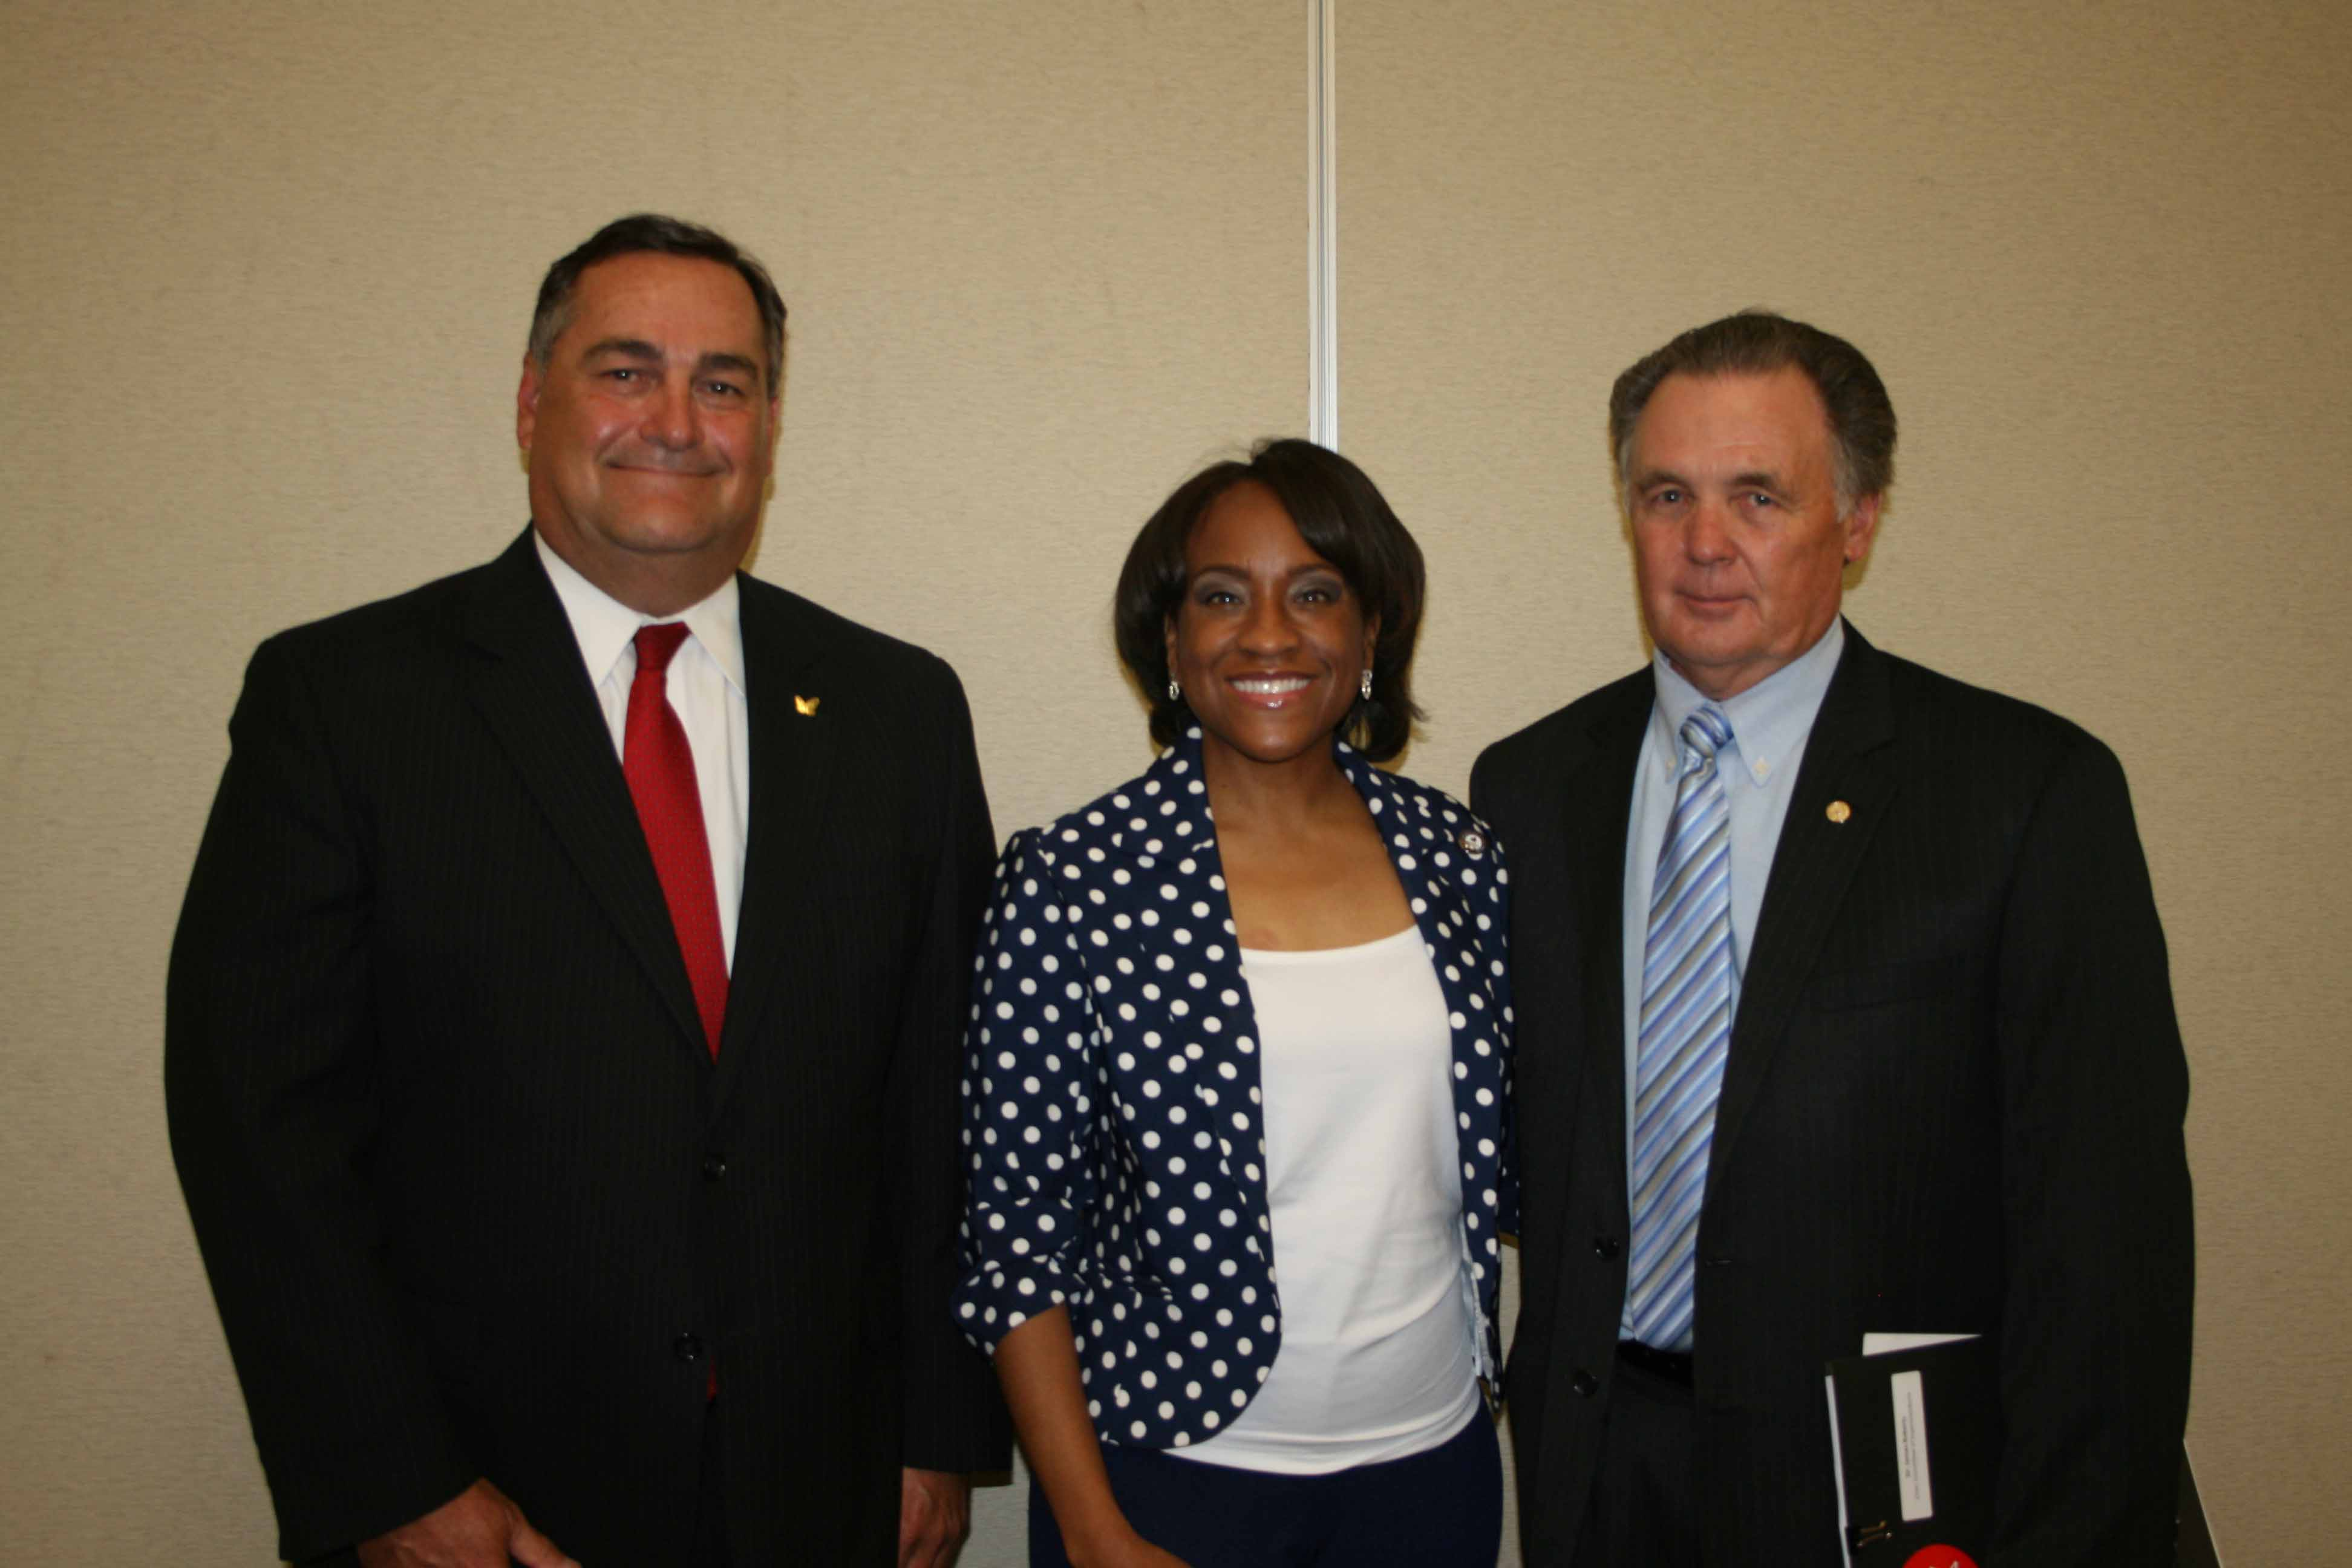 David Ropp, Chair Elect, Chesapeake Division Hampton Roads Chamber of Commerce; Bonita Harris, Dominion Virginia Power; Dr. James T. Roberts, Superintendent, Chesapeake Public Schools